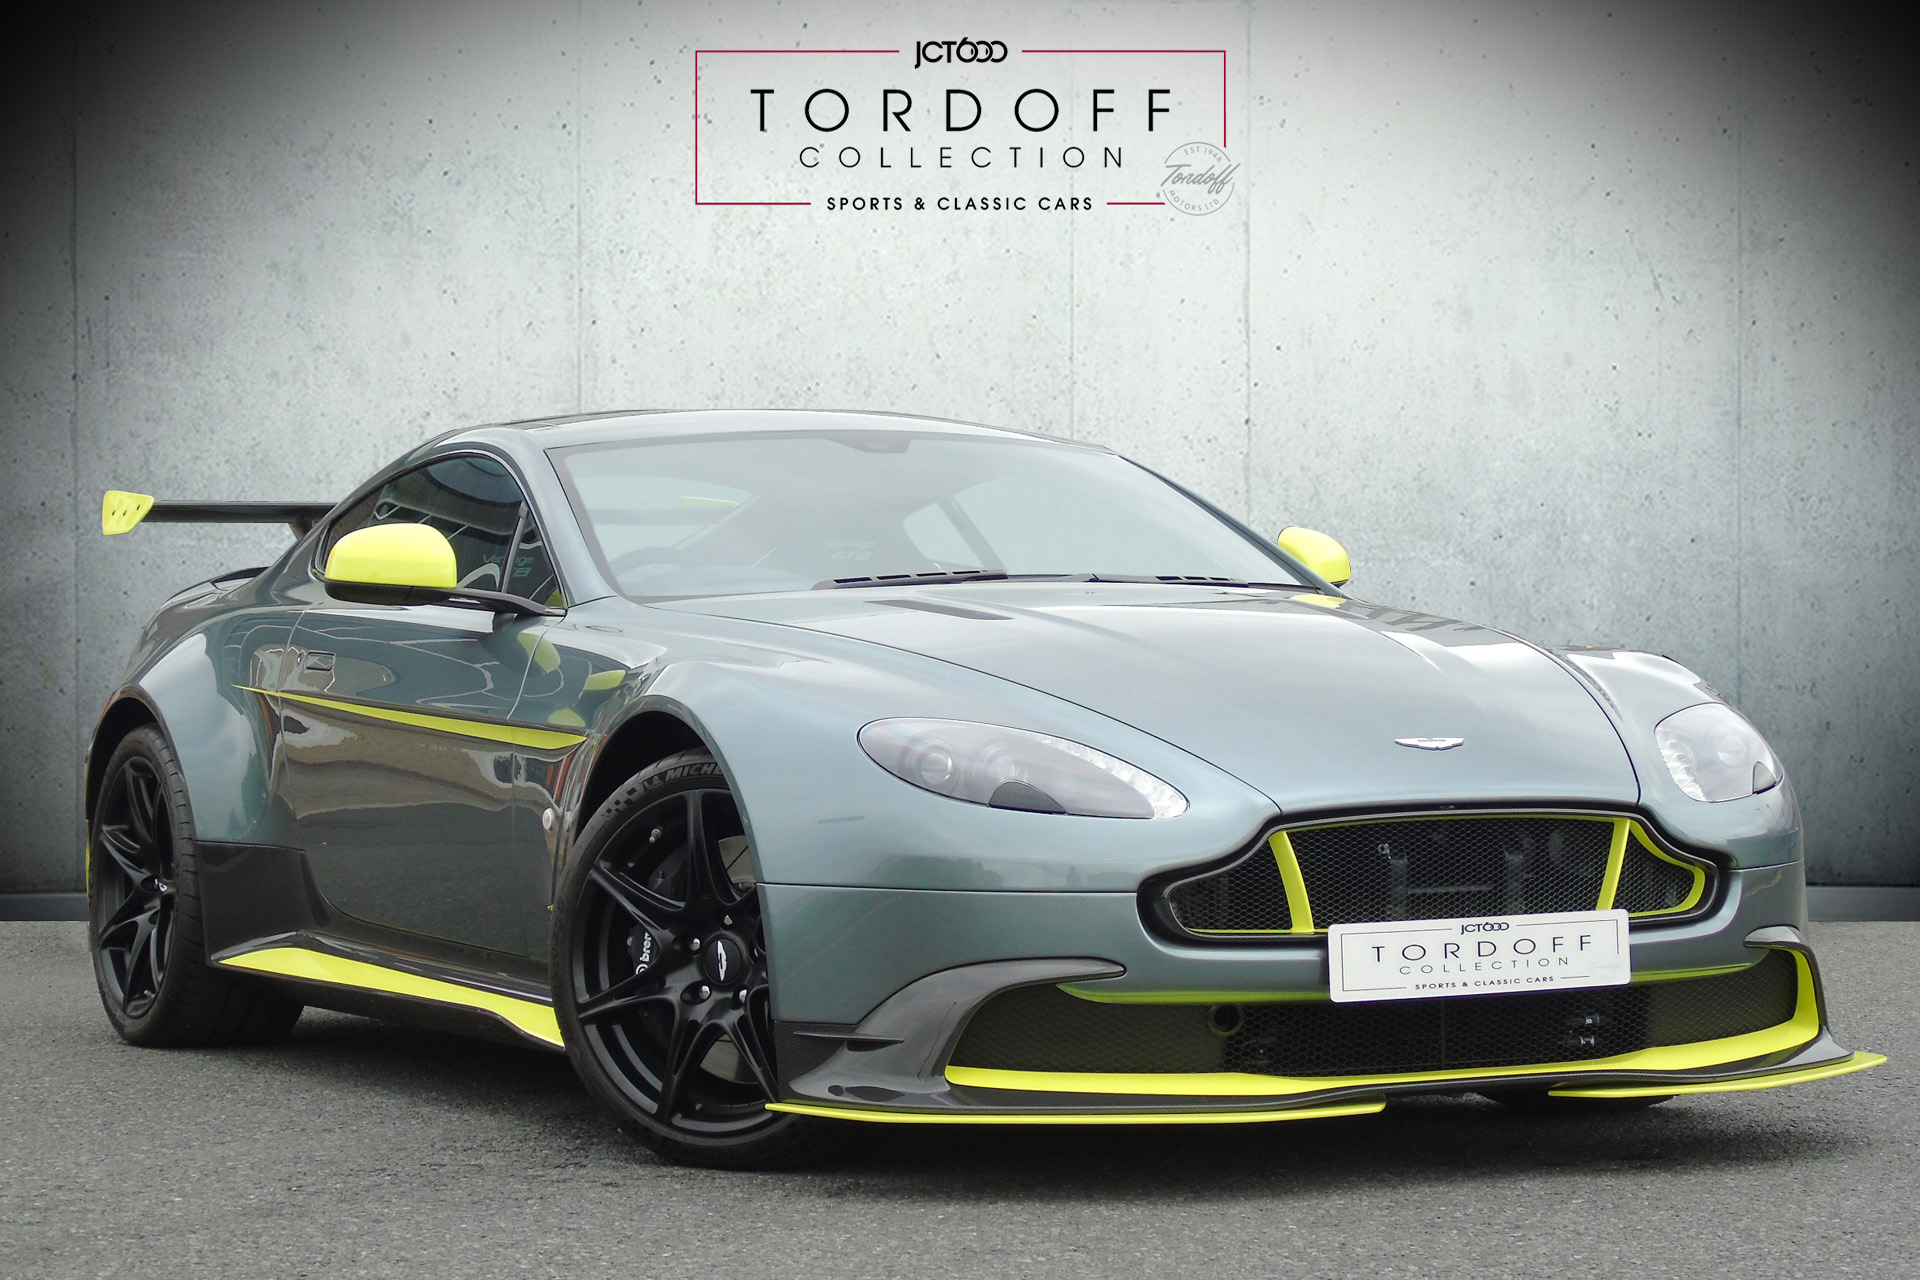 The Tordoff Collection – Aston Martin GT8 includes Track Day with Sam Tordoff